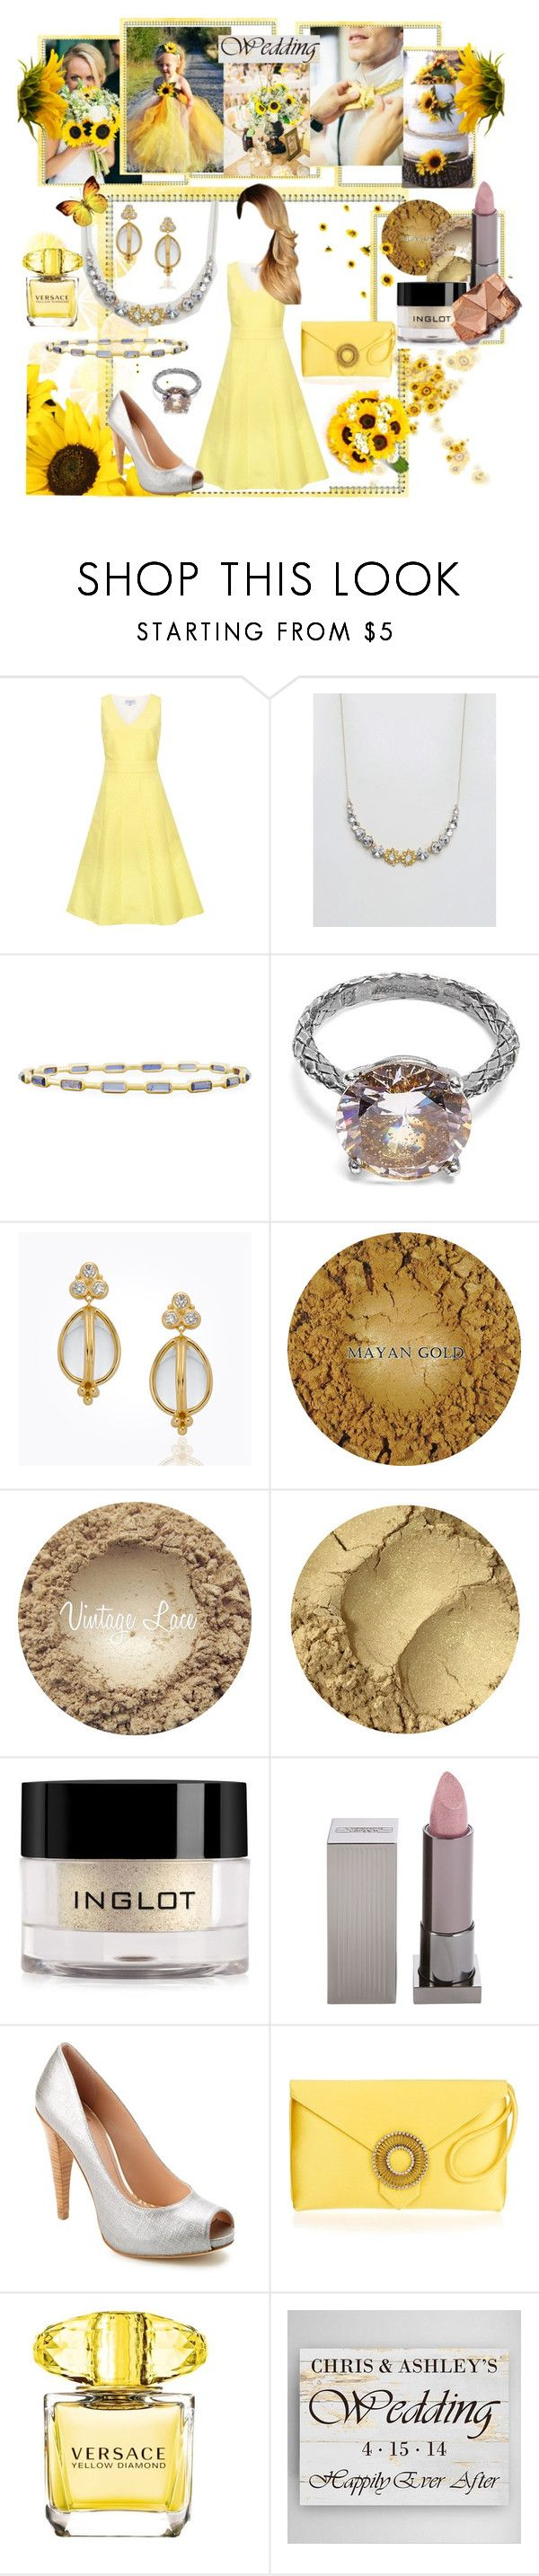 """Sunflower Wedding"" by aliceridler ❤ liked on Polyvore featuring Whistle & Wolf, Johnny Loves Rosie, Ippolita, Bottega Veneta, Inglot, Lipstick Queen, Stuart Weitzman, Versace and Home Decorators Collection"